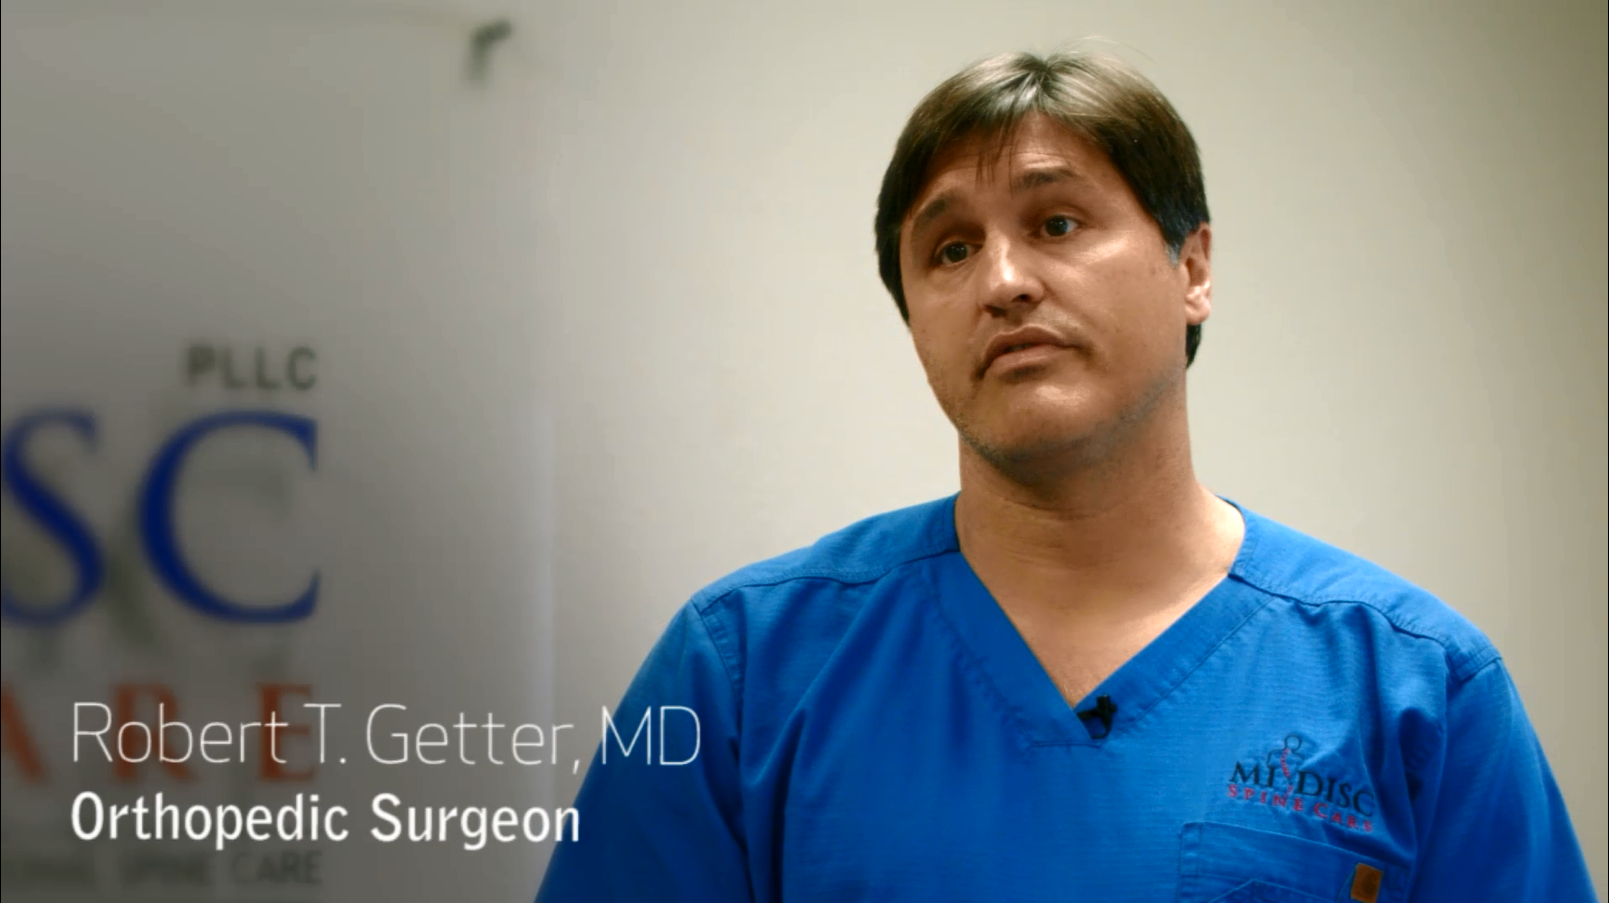 Dr. Getter talks about his practice